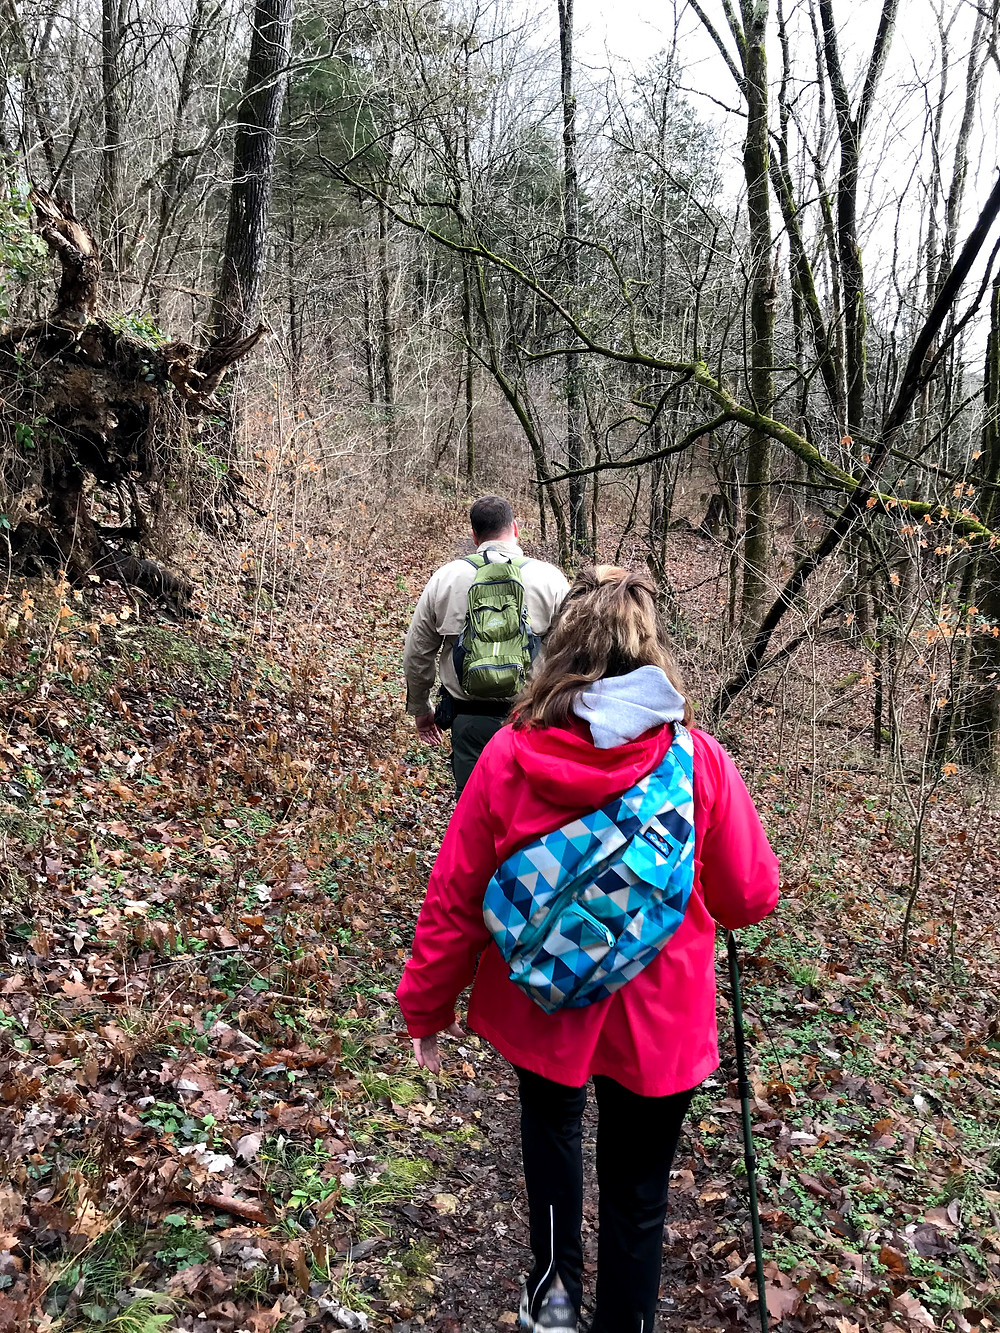 Ranger and fellow hiker start on First Day Hike at Edgar Evins State Park in Tennessee